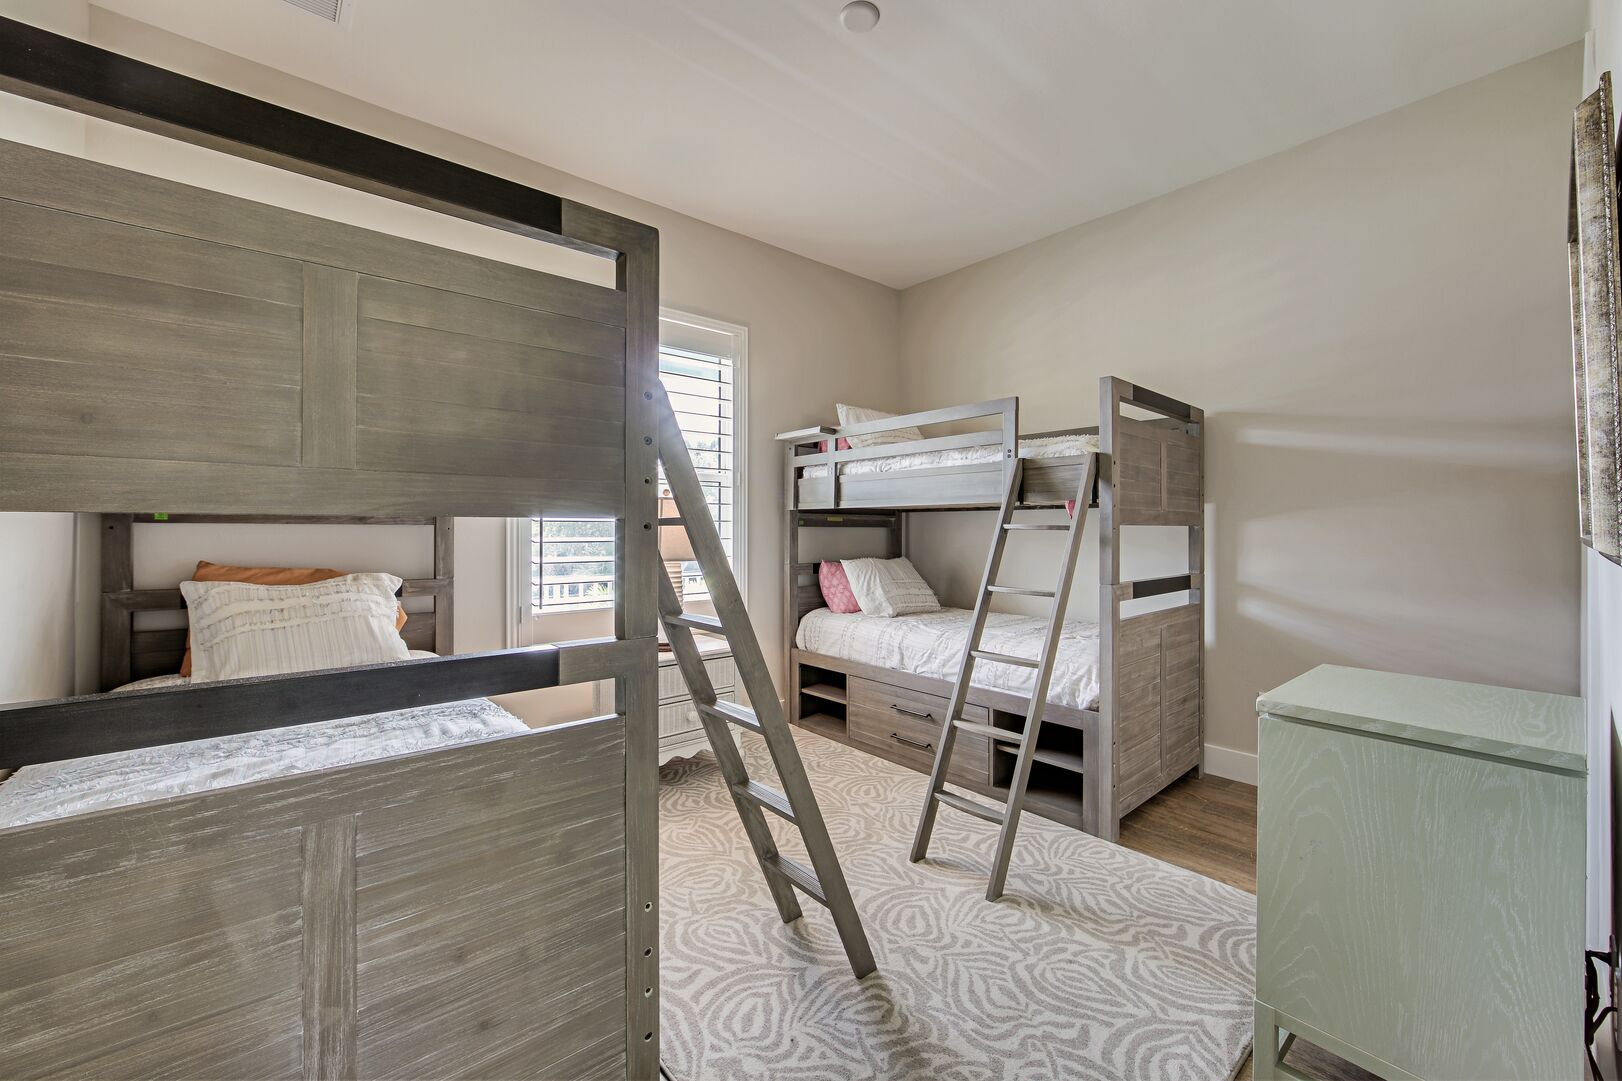 Bedroom with two bunk beds